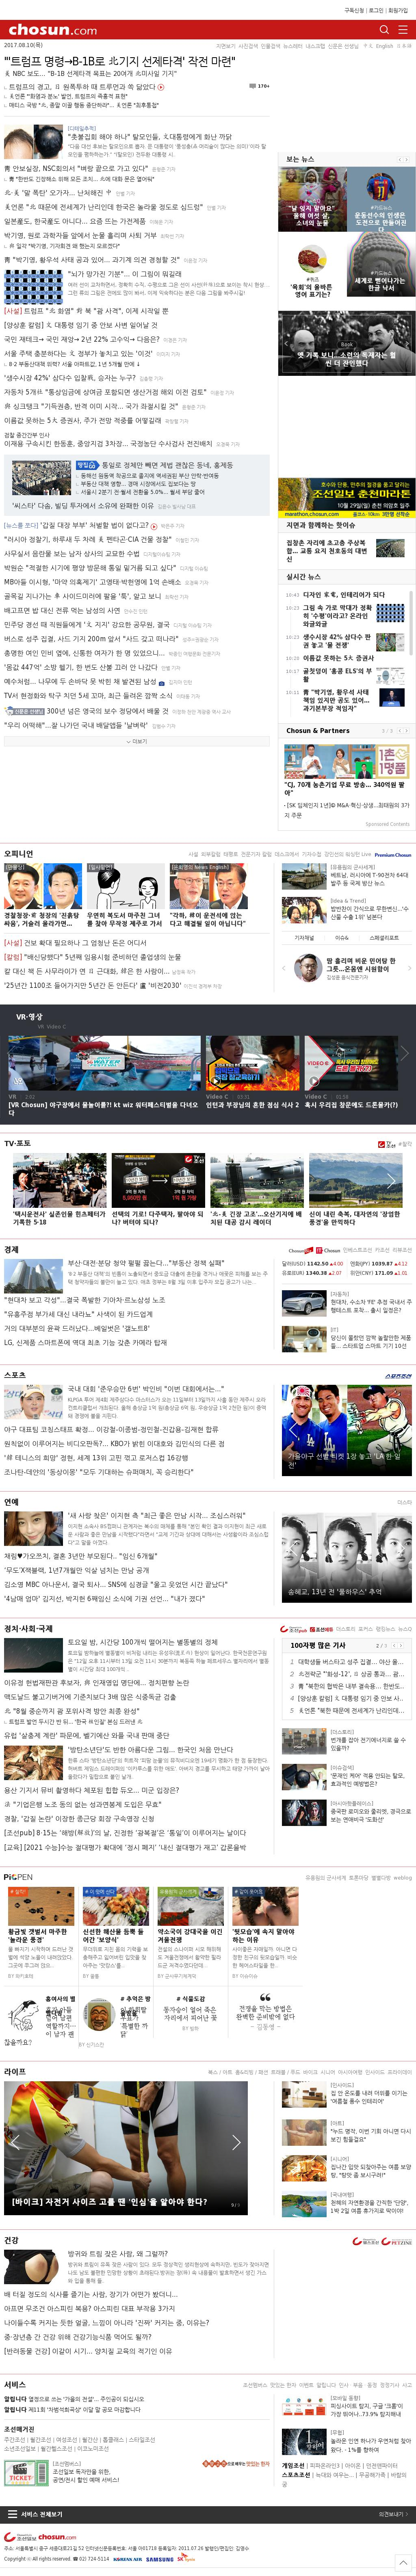 chosun.com at Thursday Aug. 10, 2017, 12:02 p.m. UTC